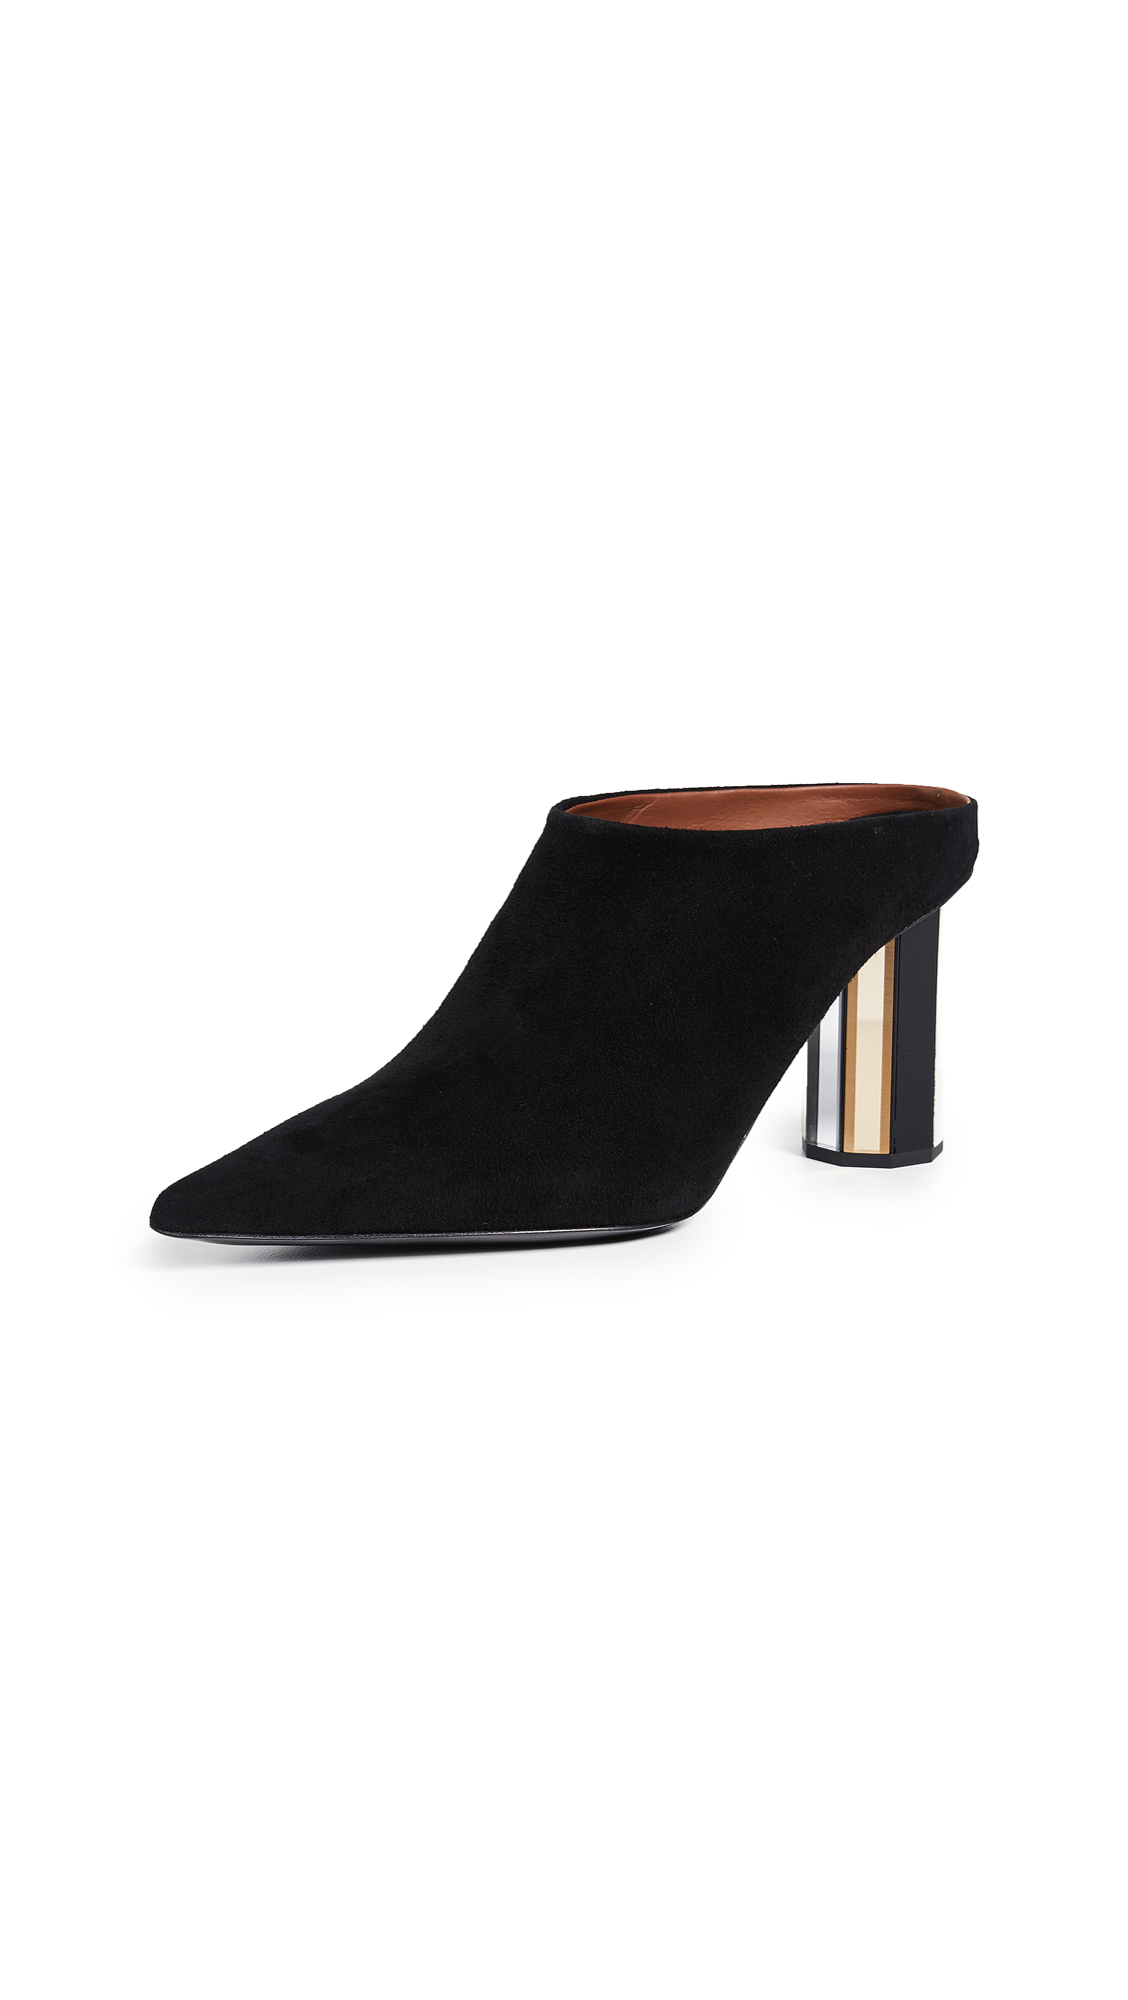 Proenza Schouler Mule Pumps - Black